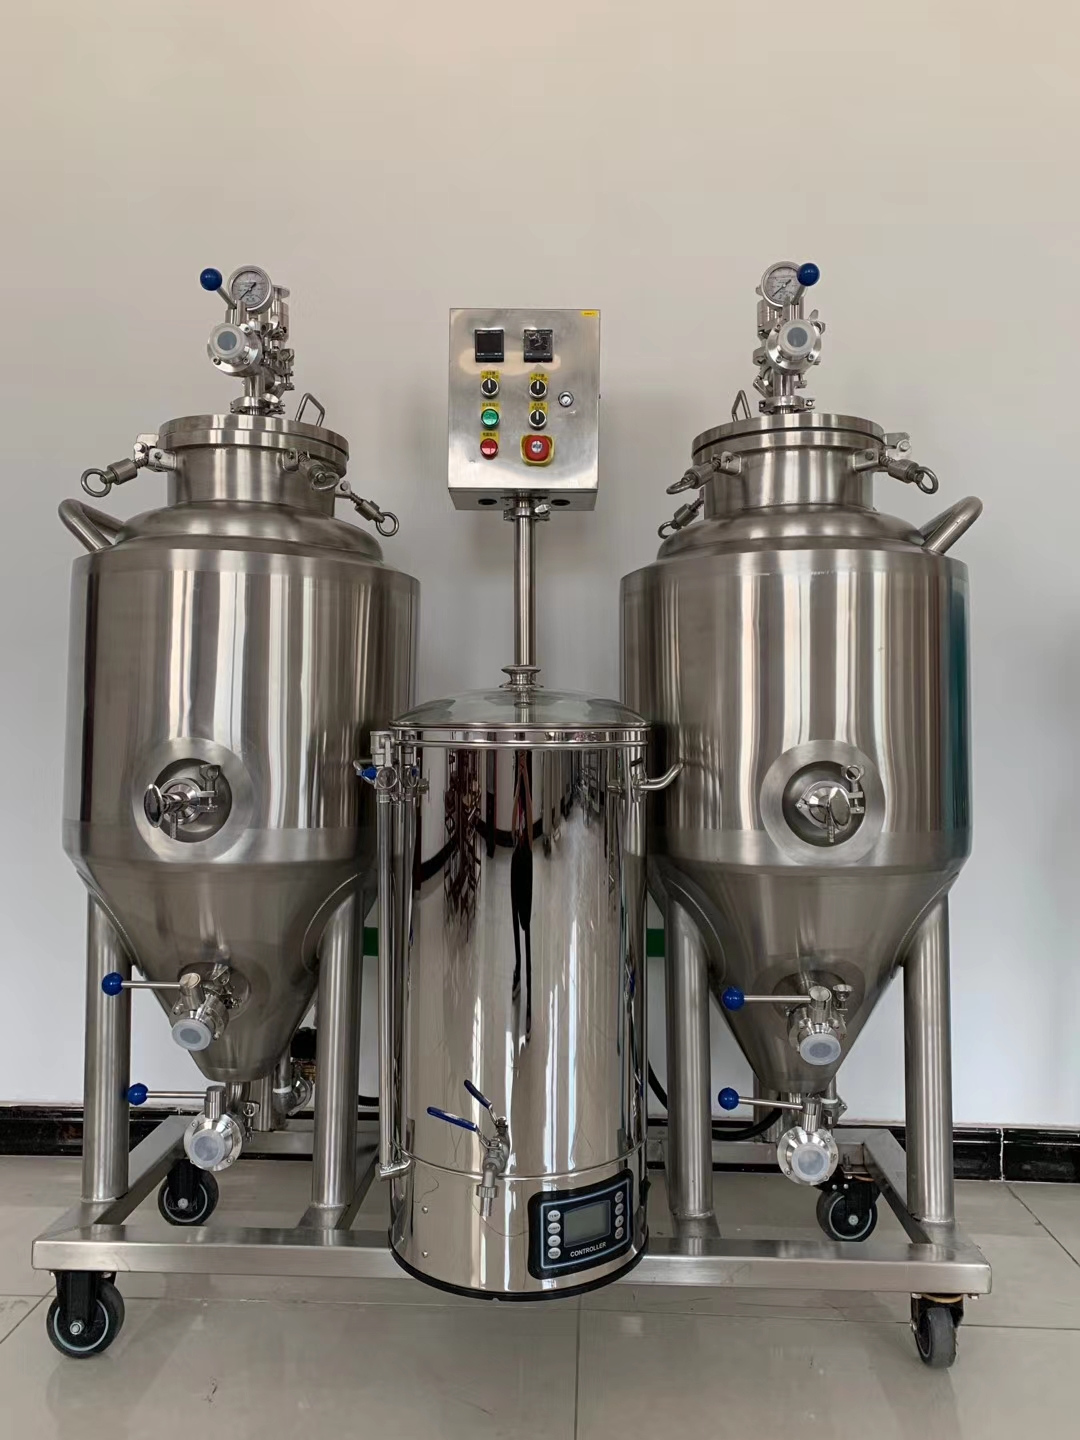 Home-beer-all-in-one-brewing-equipment.jpg